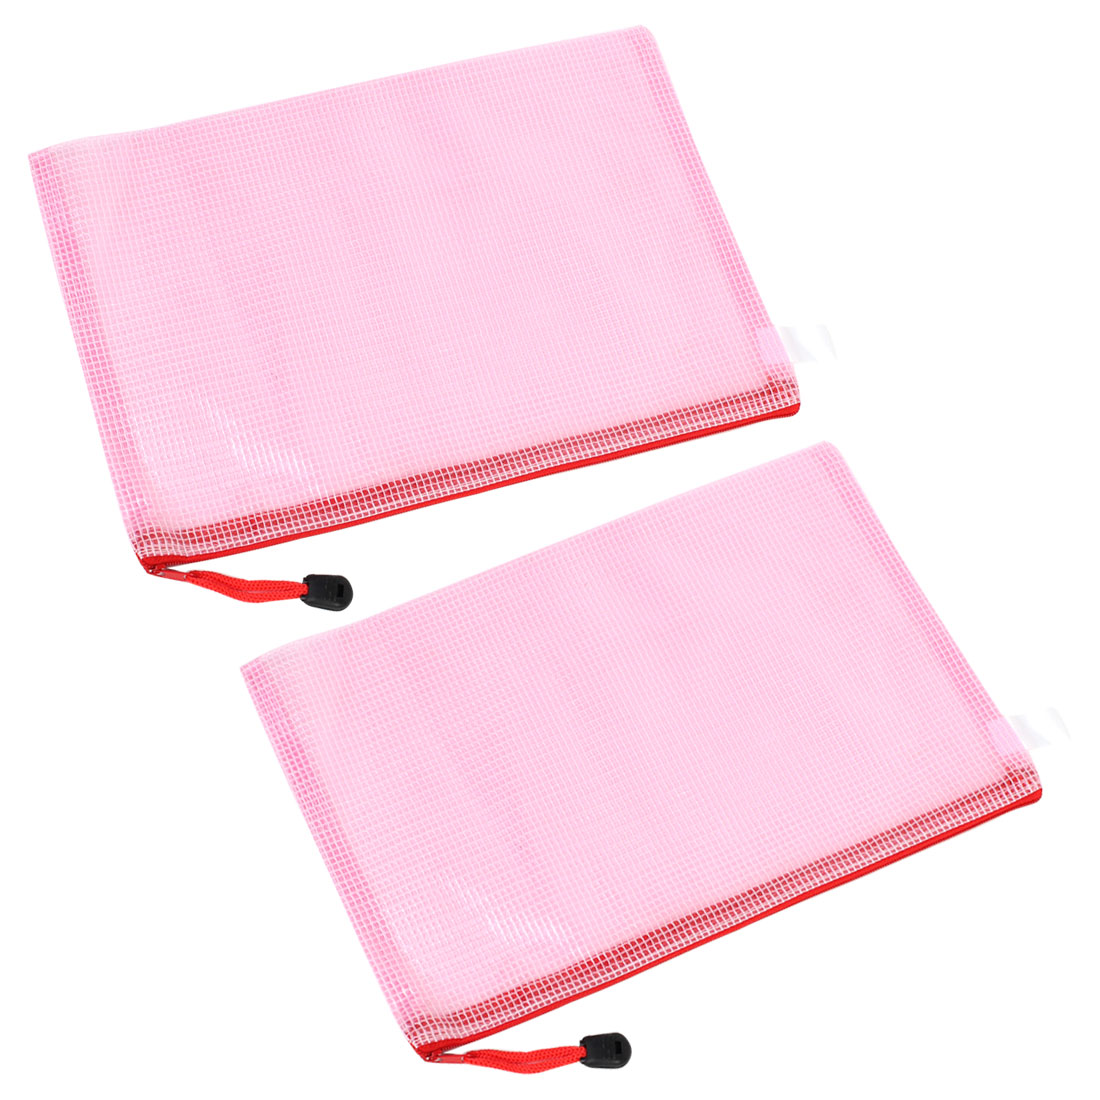 2 Pcs Clear Pink Plastic Zip up B5 Paper File Bag w Nylon Strap